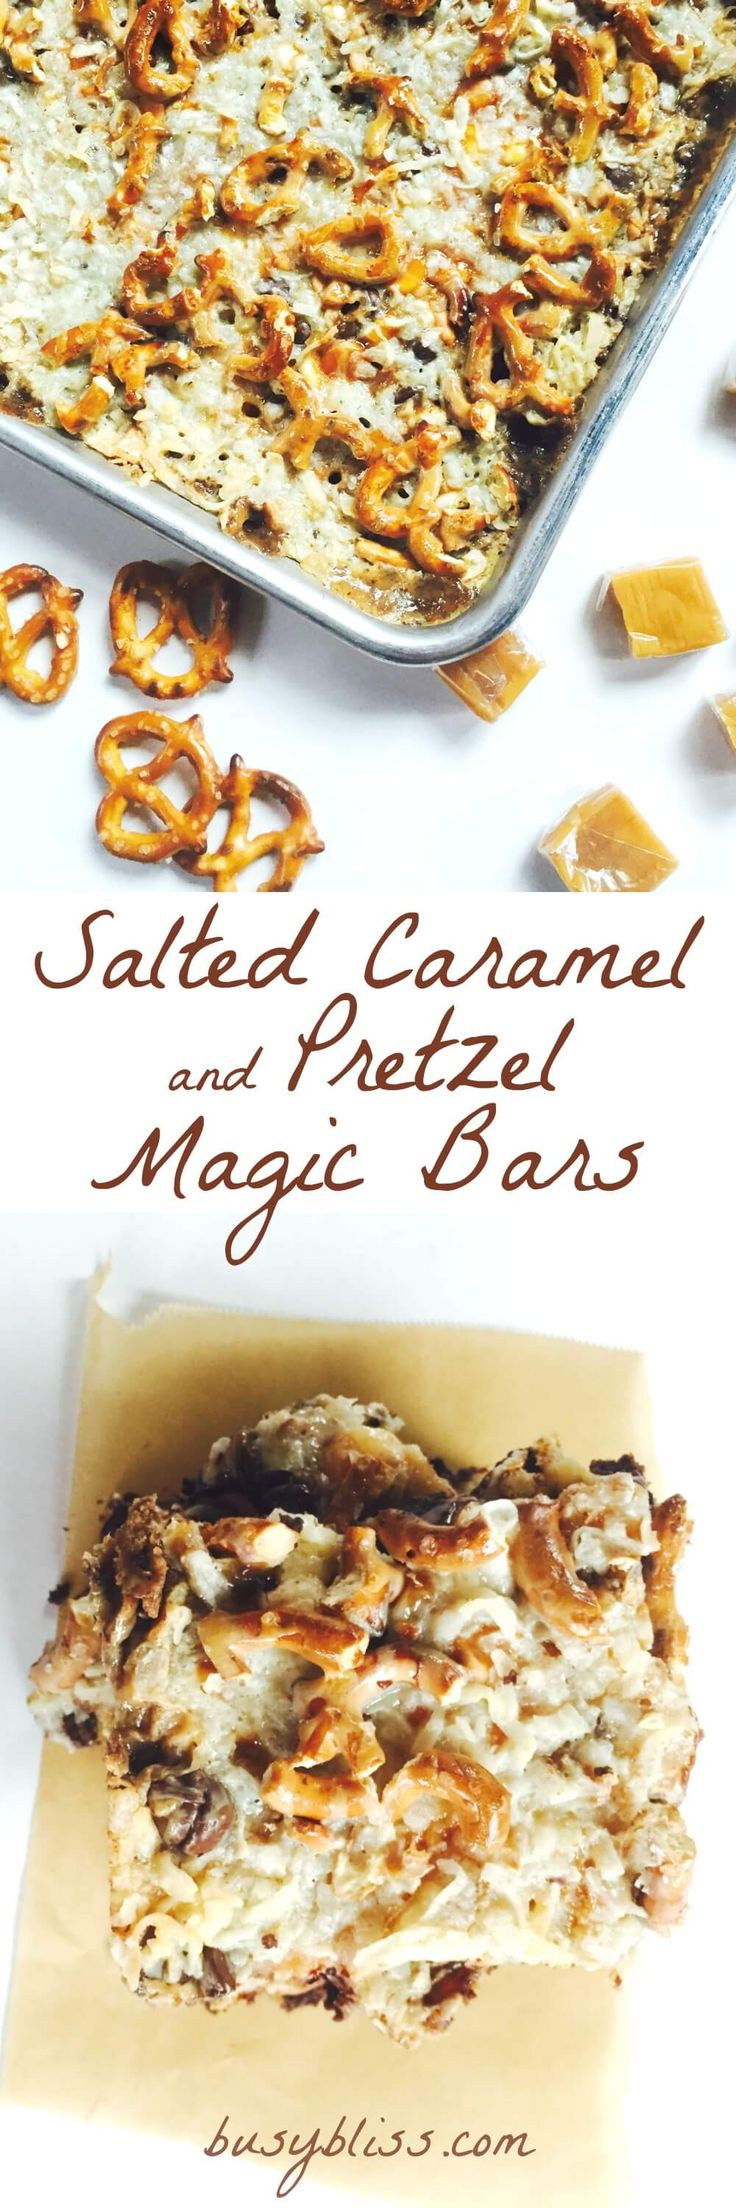 Whether you are a fan of salty or sweet, Salted Caramel and Pretzel Magic Bars will hit the spot.  A super easy recipe to add to your holiday baking!